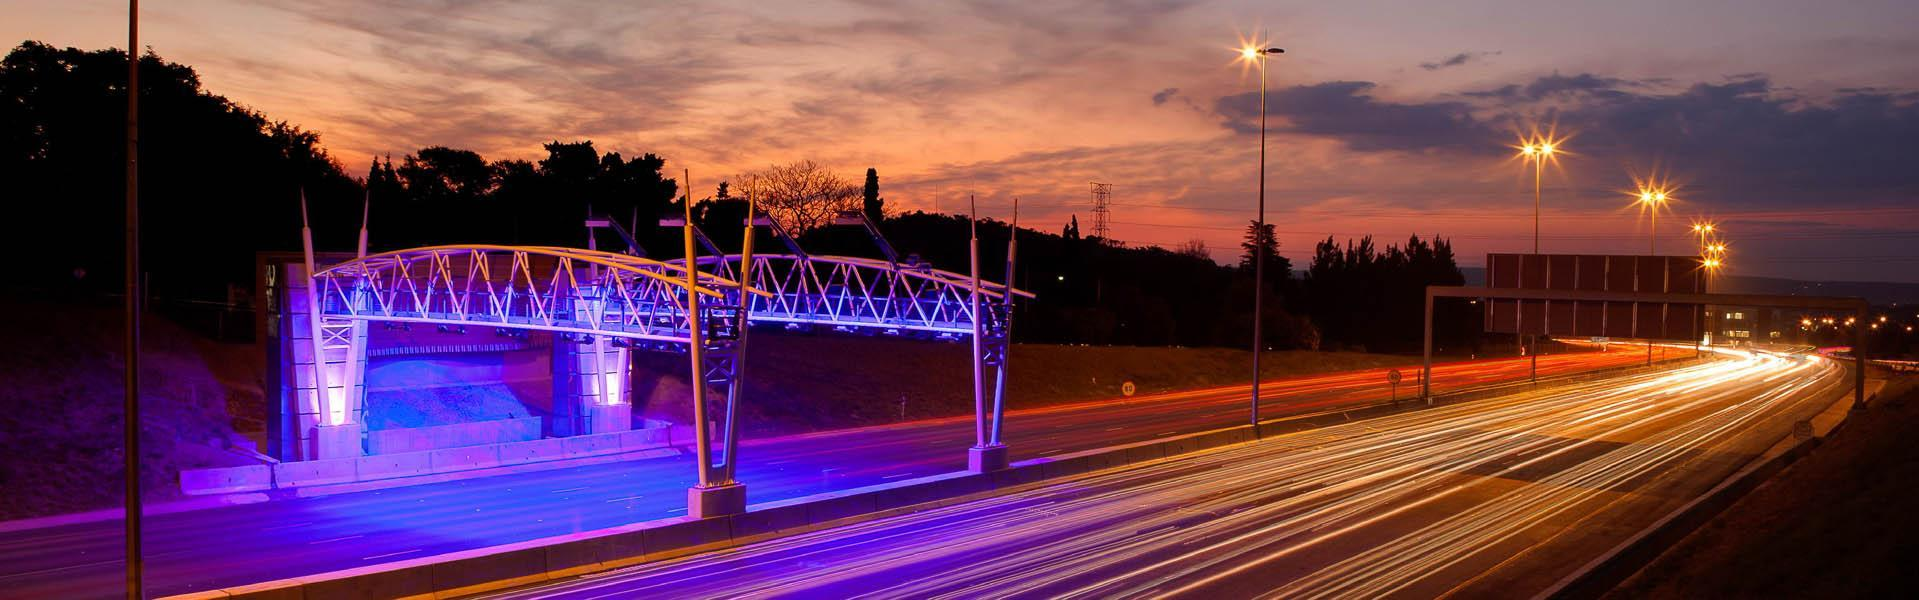 A free-flow toll gantry from Sanral's Gauteng Freeway Improvement Project (GFIP)